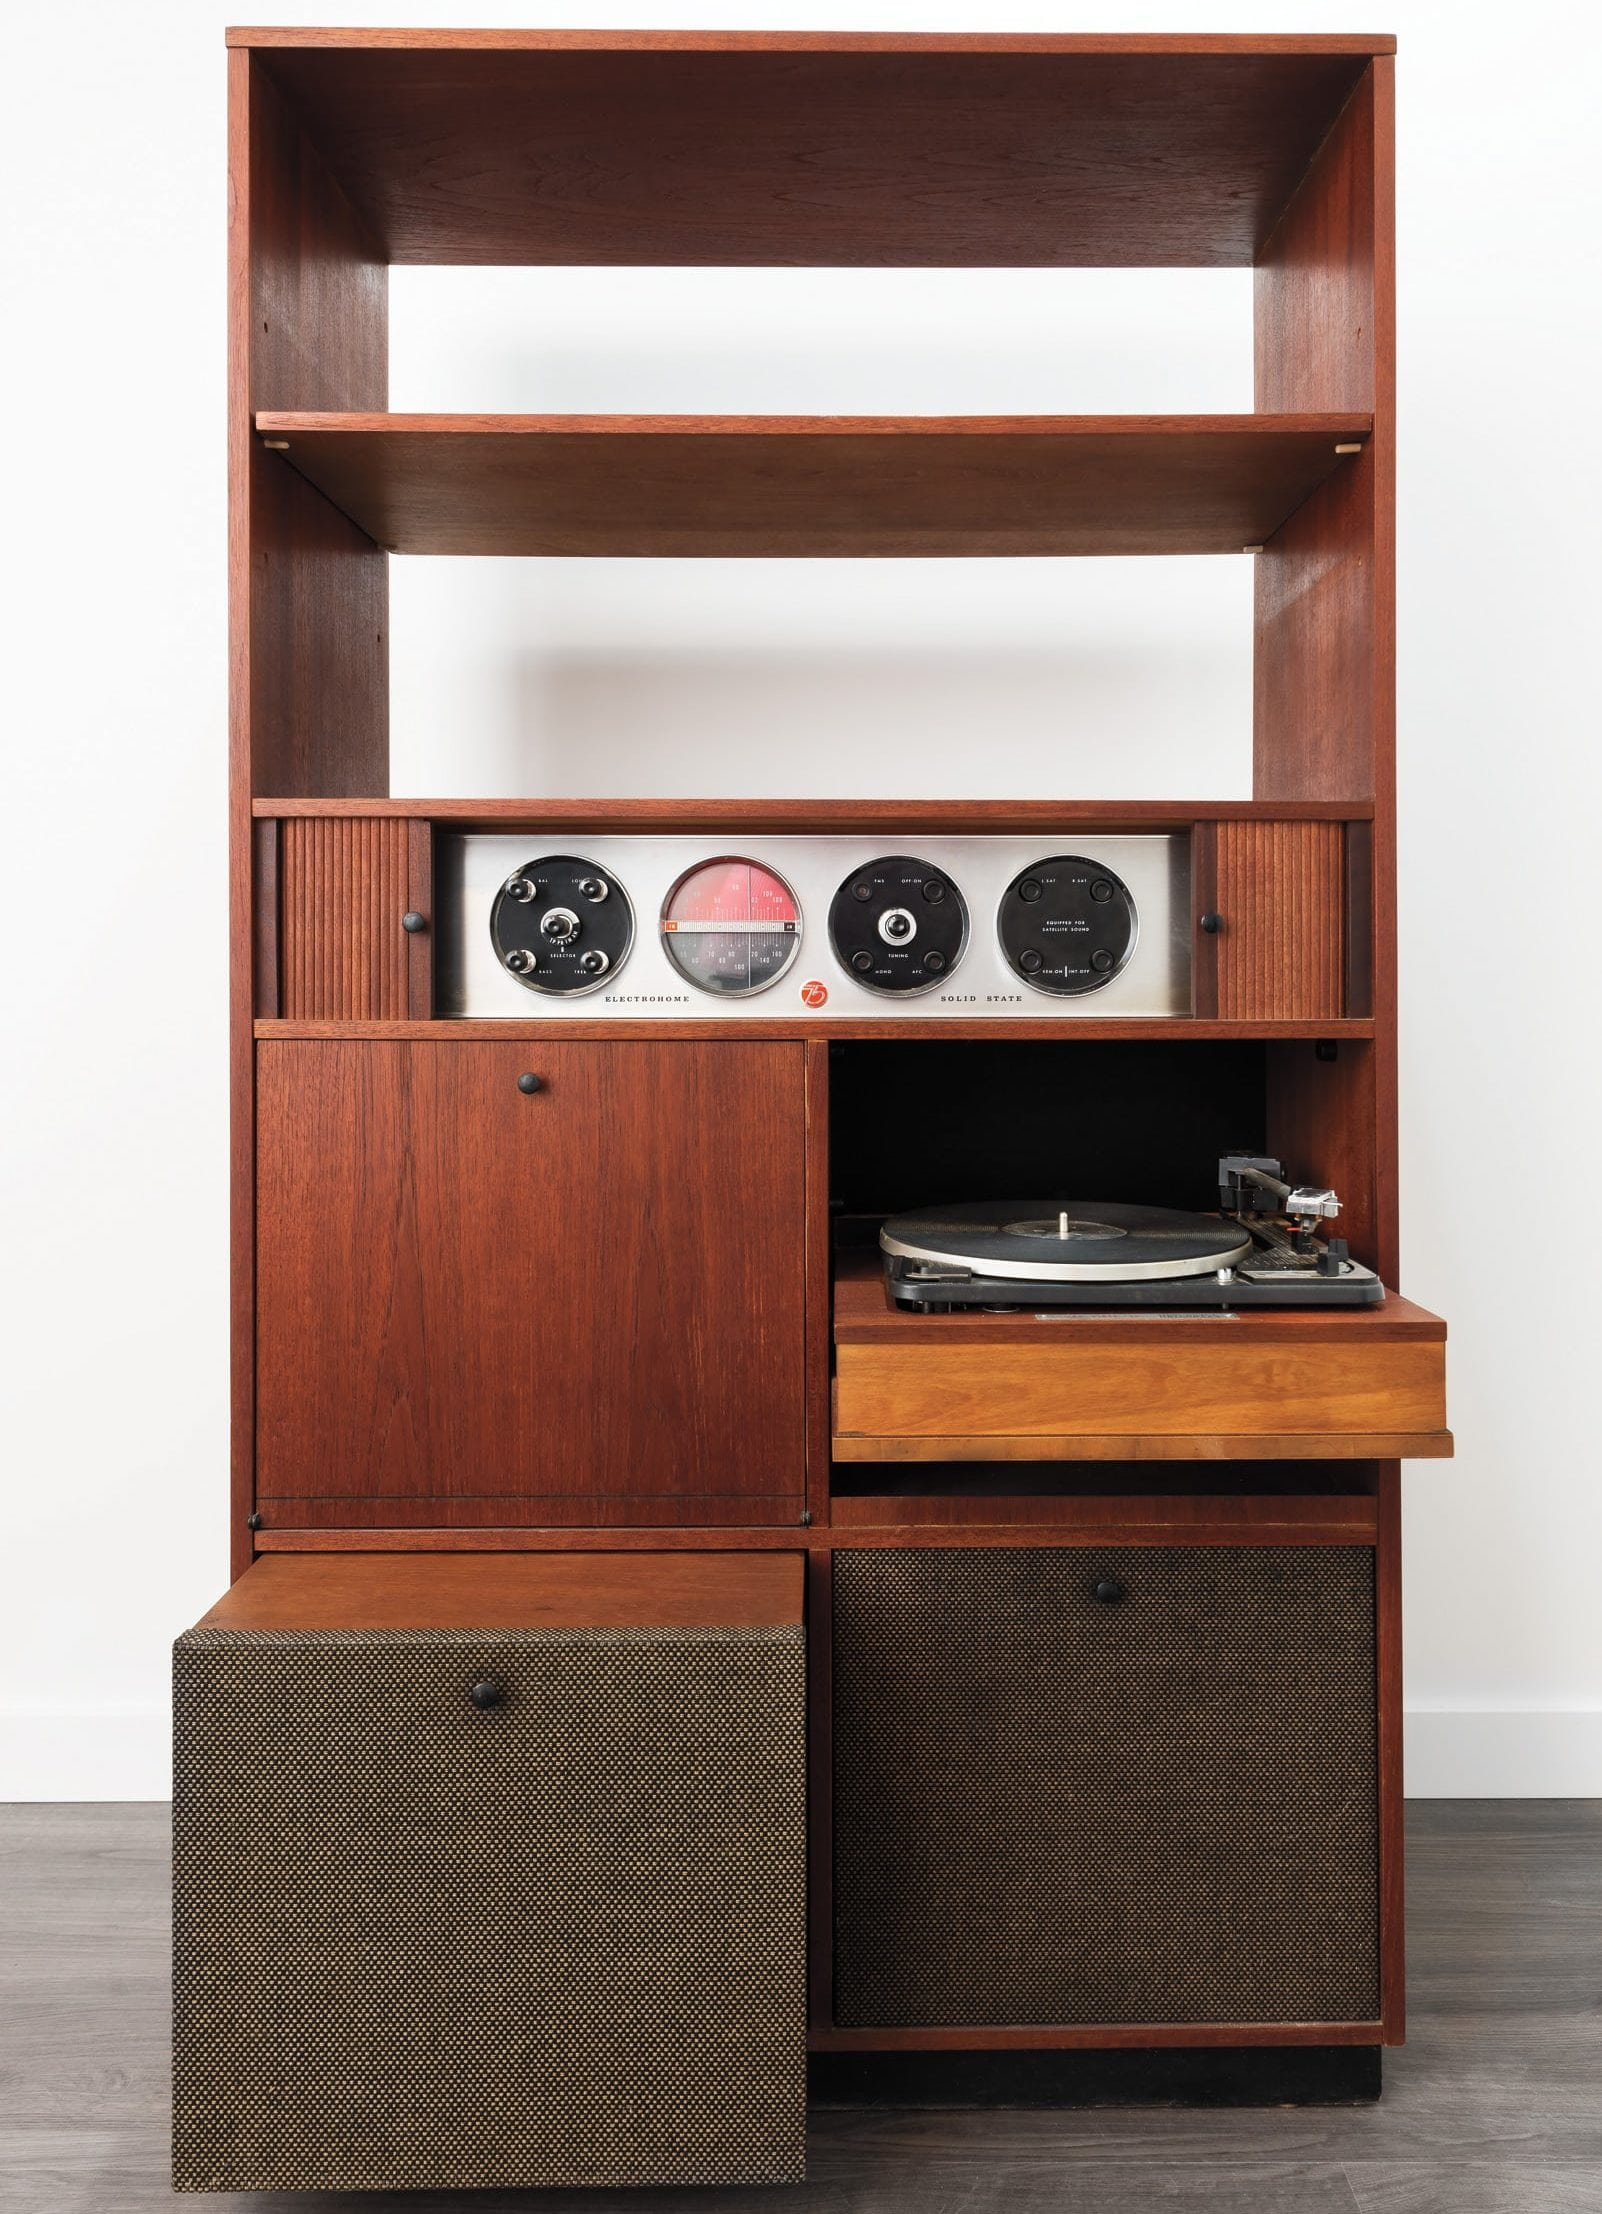 Restored by Mario Scaffardi, the Electrohome Circa 75 Model 702 stereo and its Deilcraft cabinet were both manufactured in Kitchener, Ontario. Photo: Marc Fowler